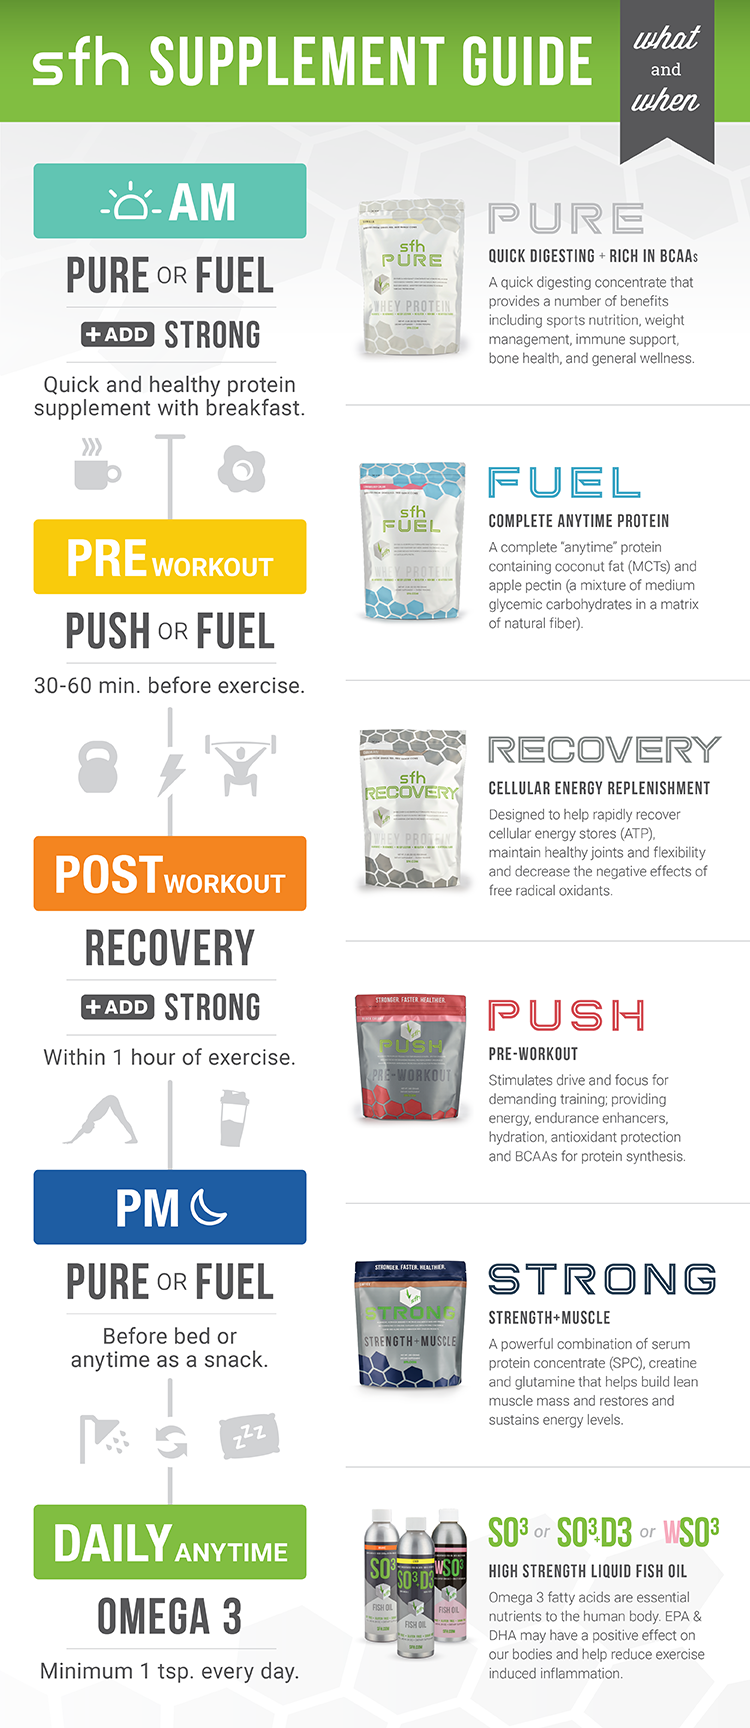 supplementguideposter-infographic-20160808-01